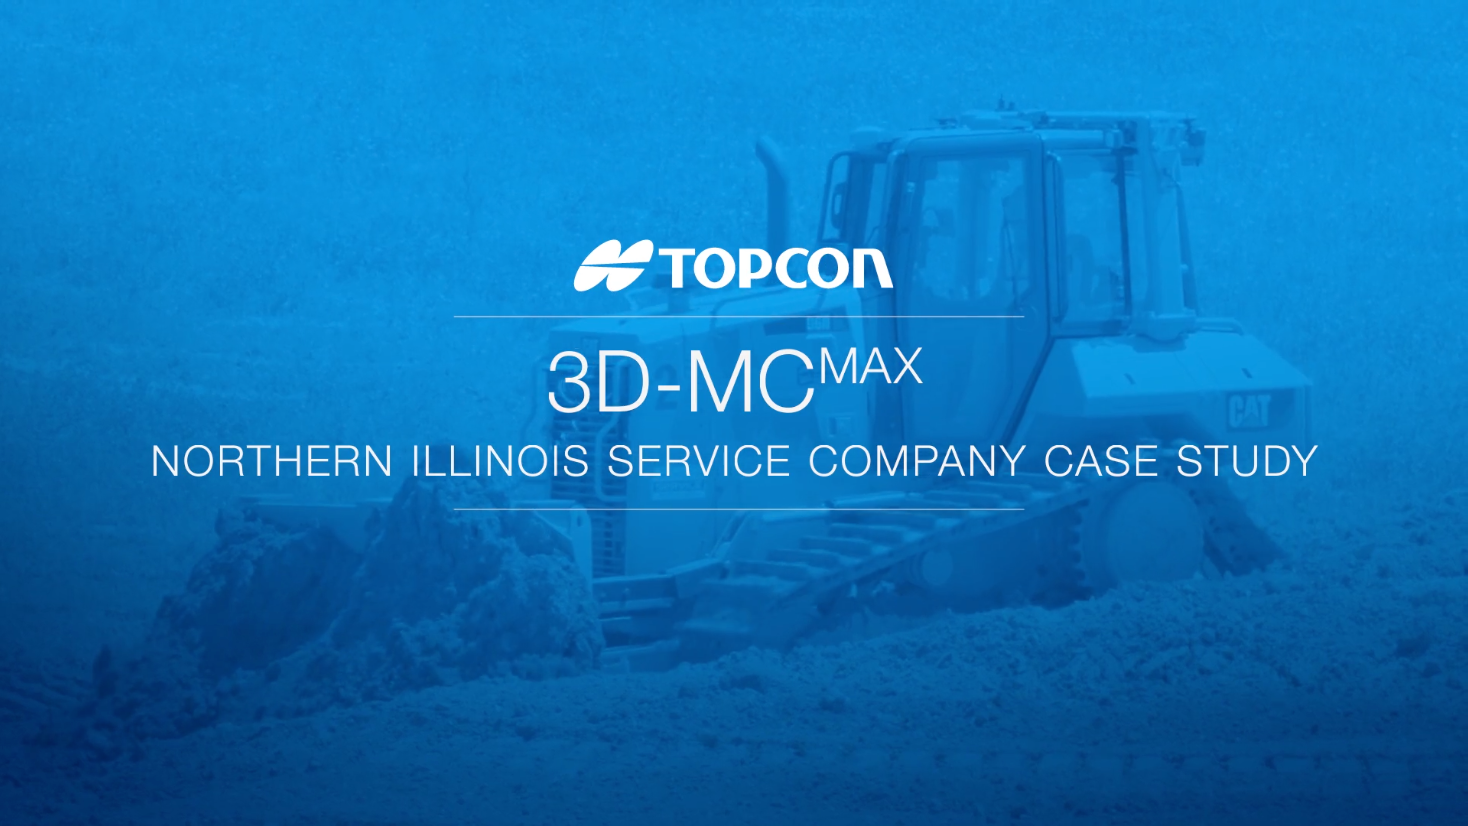 dozer mapping with Northern Illinois Service  Pany Plows Ahead  Petition 3d Mc Max Dozer Solution on Coventional Construction likewise Photos Classic 1960 Mercedes Benz L319  mercial Van At Work Truck Show also Dozer Concept together with All Change in addition Geoslam Zeb Revo Rt.